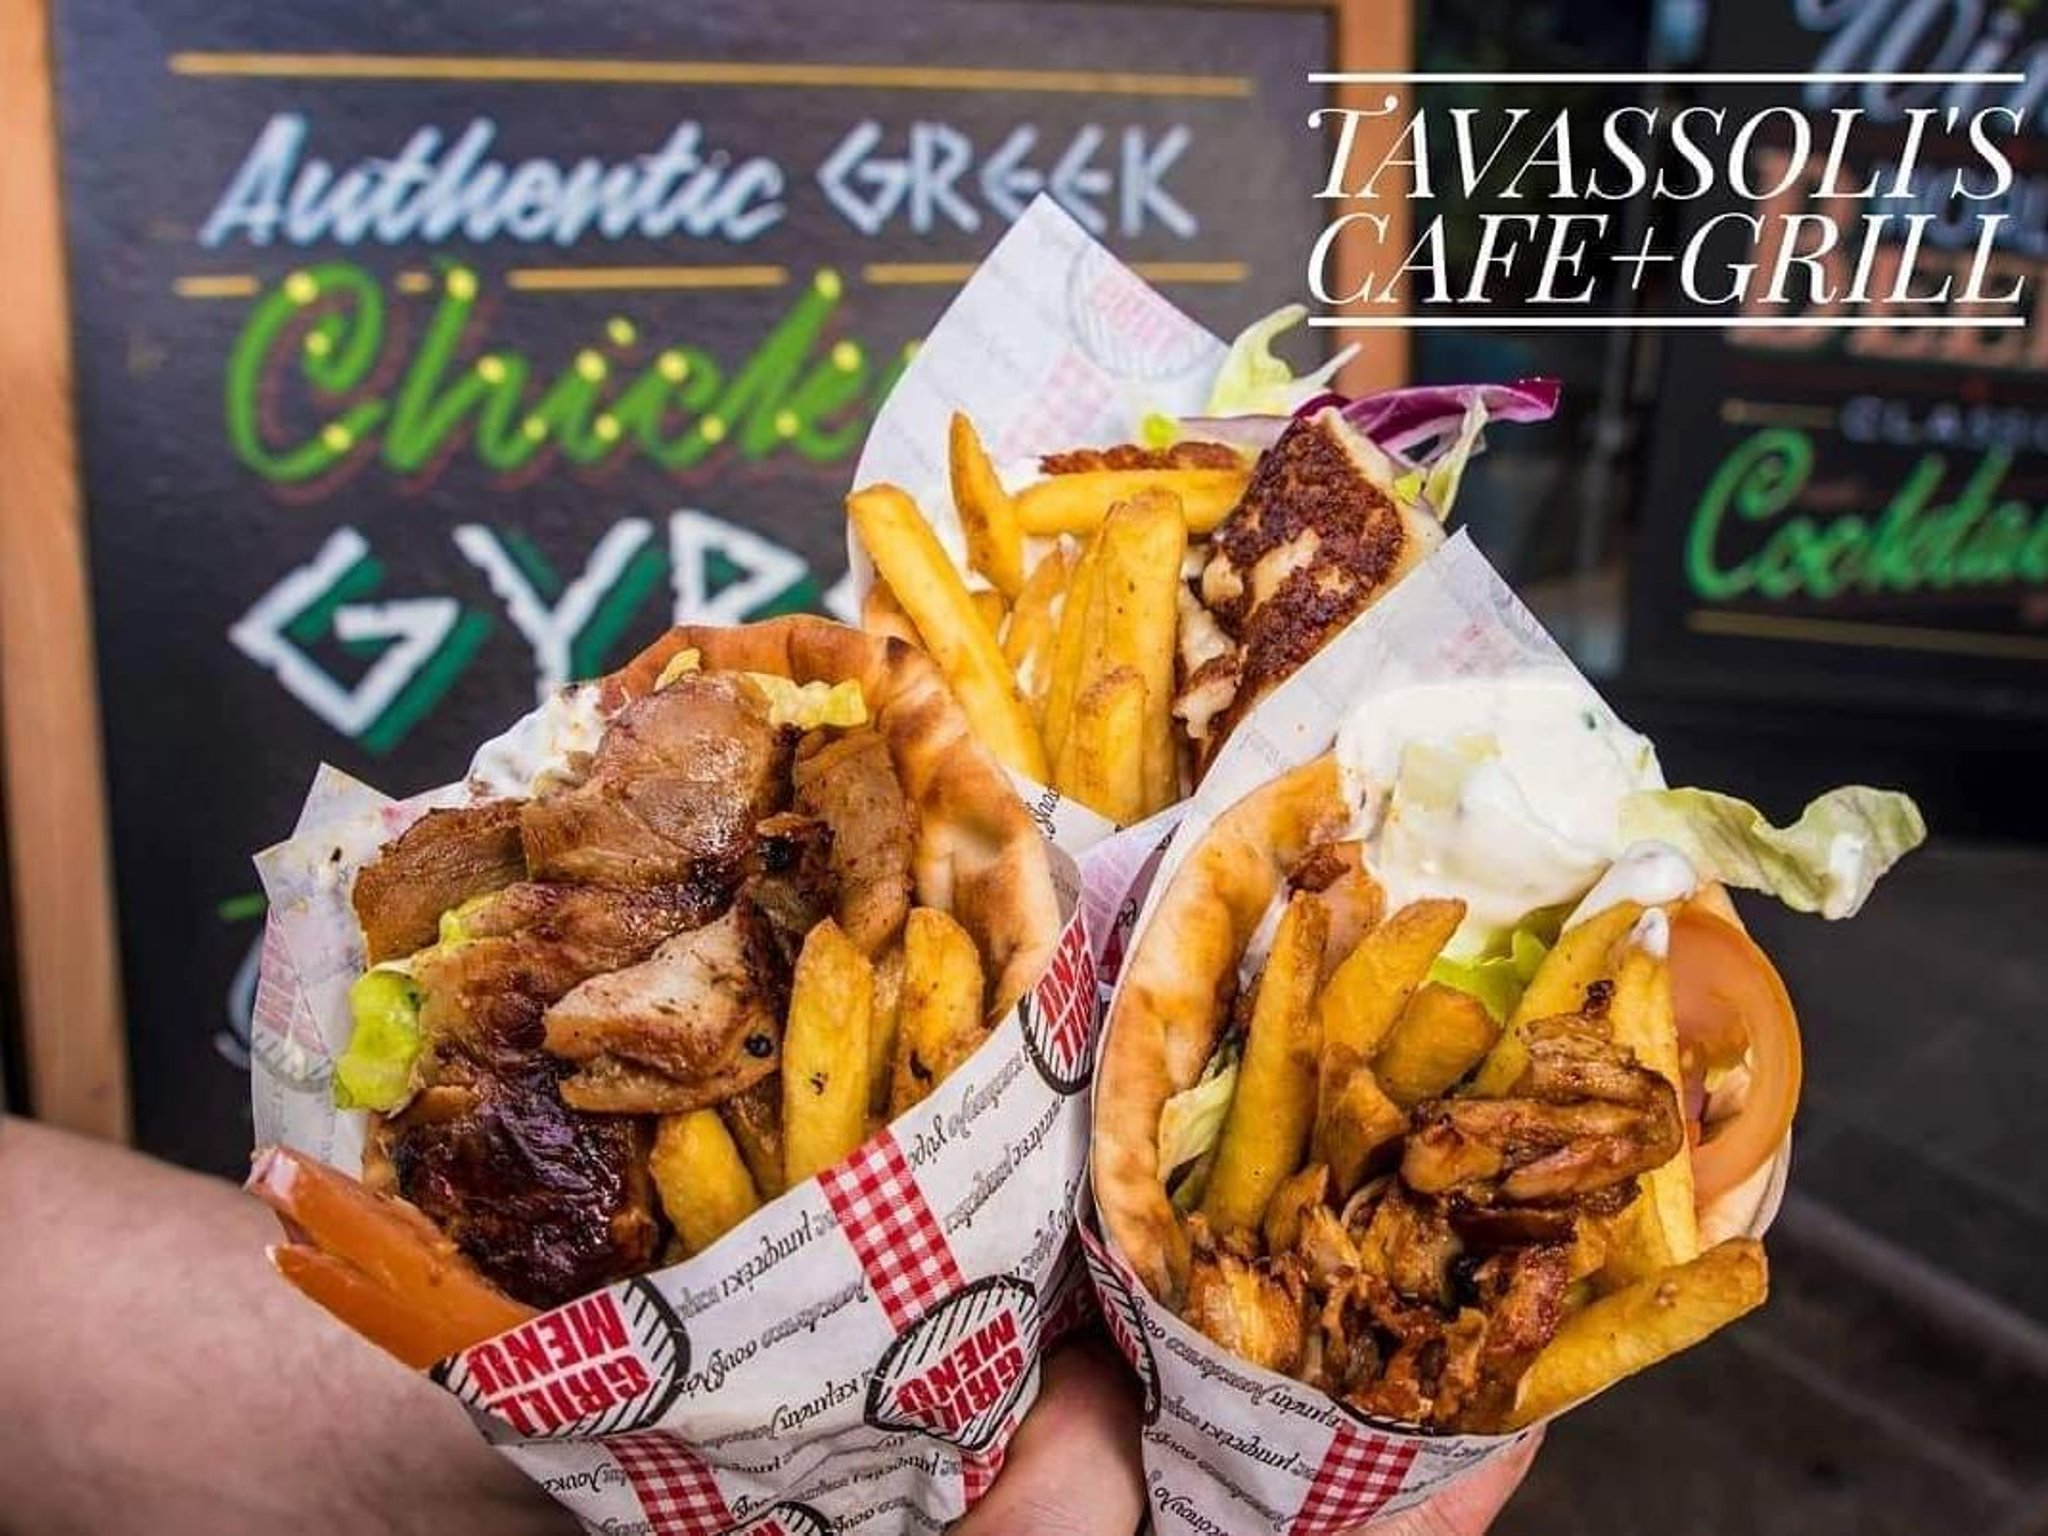 Tavassoli's Cafe announces return of popular gyros and bottomless drinks offer in Leeds